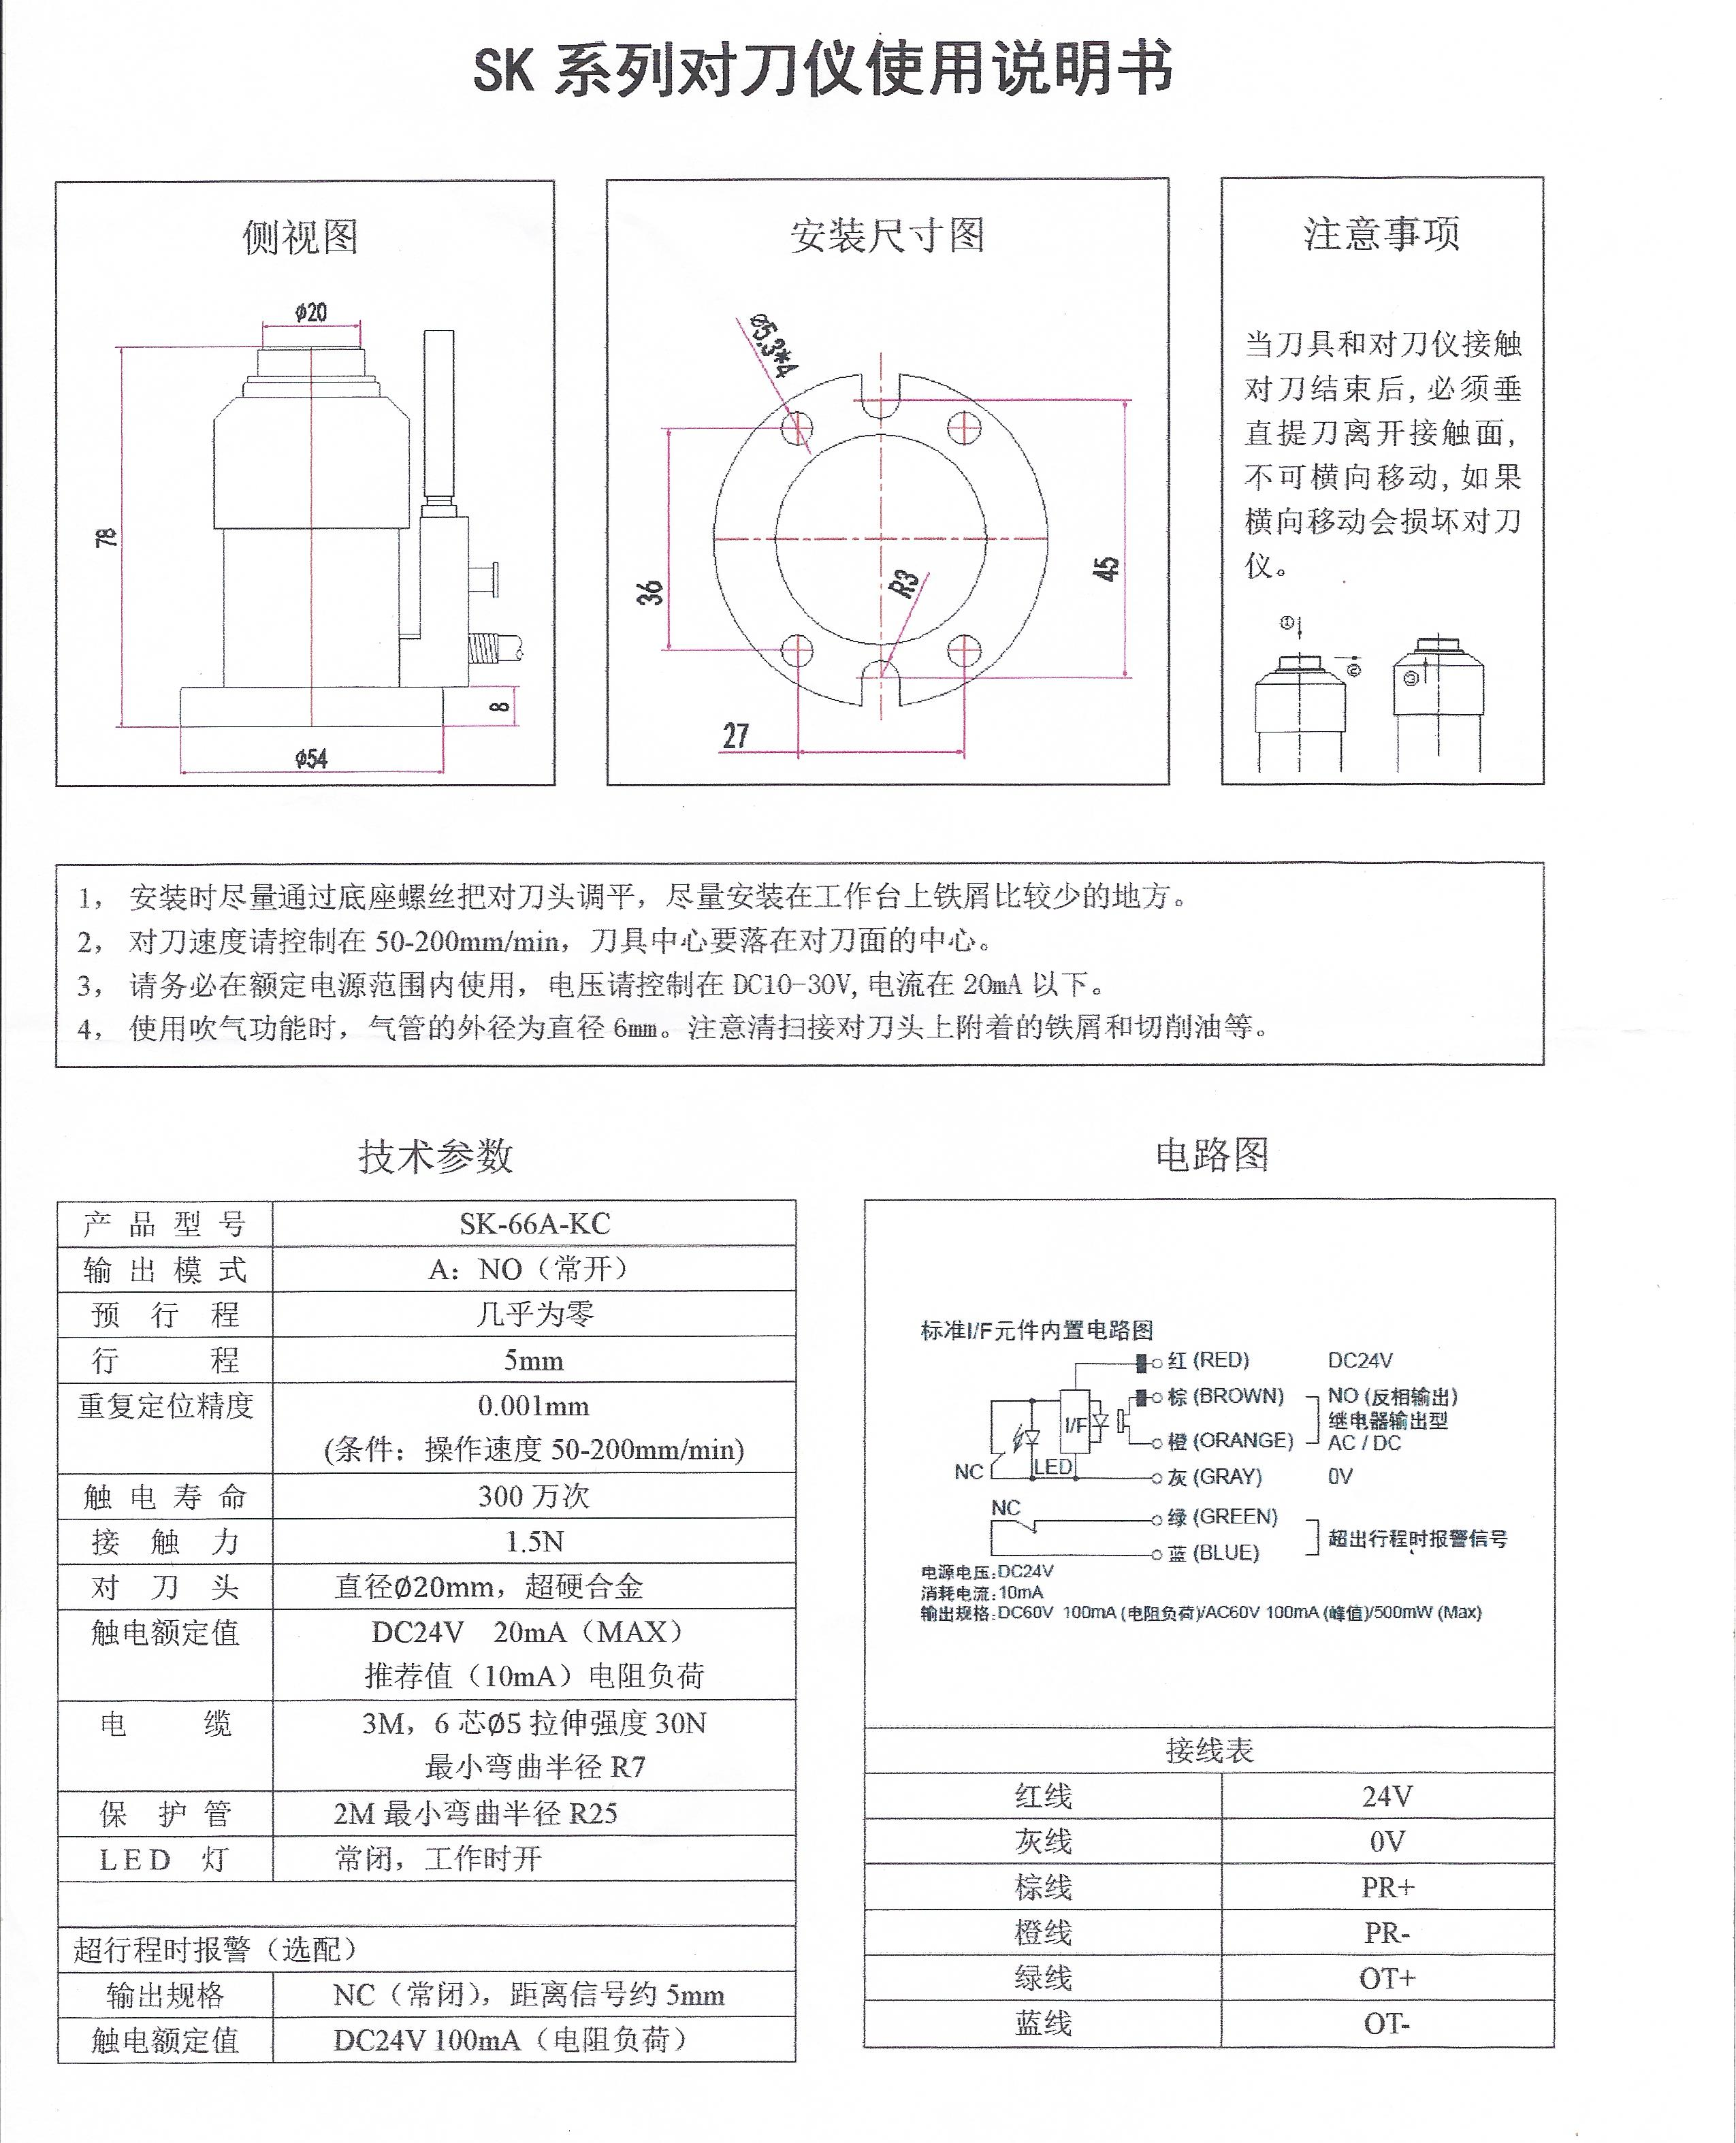 China Sanze ETS Tech and Wiring Info?resize\\\\\\\\\\\\\\\\\\\\\\\\\\\\\\\\\\\\\\\\\\\\\\\\\\\\\\\\\\\\\\\\\\\\\\\\\\\\\\\\\\\\\\\\\\\\\\\\\\\\\\\\\\\\\\\\\\\\\\\\\\\\\\\\\\\\\\\\\\\\\\\\\\\\\\\\\\\\\\\\\\\\\\\\\\\\\\\\\\\\\\\\\\\\\\\\\\\\\\\\\\\\\\\\\\\\\\\\\\\\\\\\\\\\\\\\\\\\\\\\\\\\\\\\\\\\\\\=665%2C821 tbb 3g wiring diagrams 4 way wiring diagram \u2022 edmiracle co Basic Electrical Wiring Diagrams at readyjetset.co